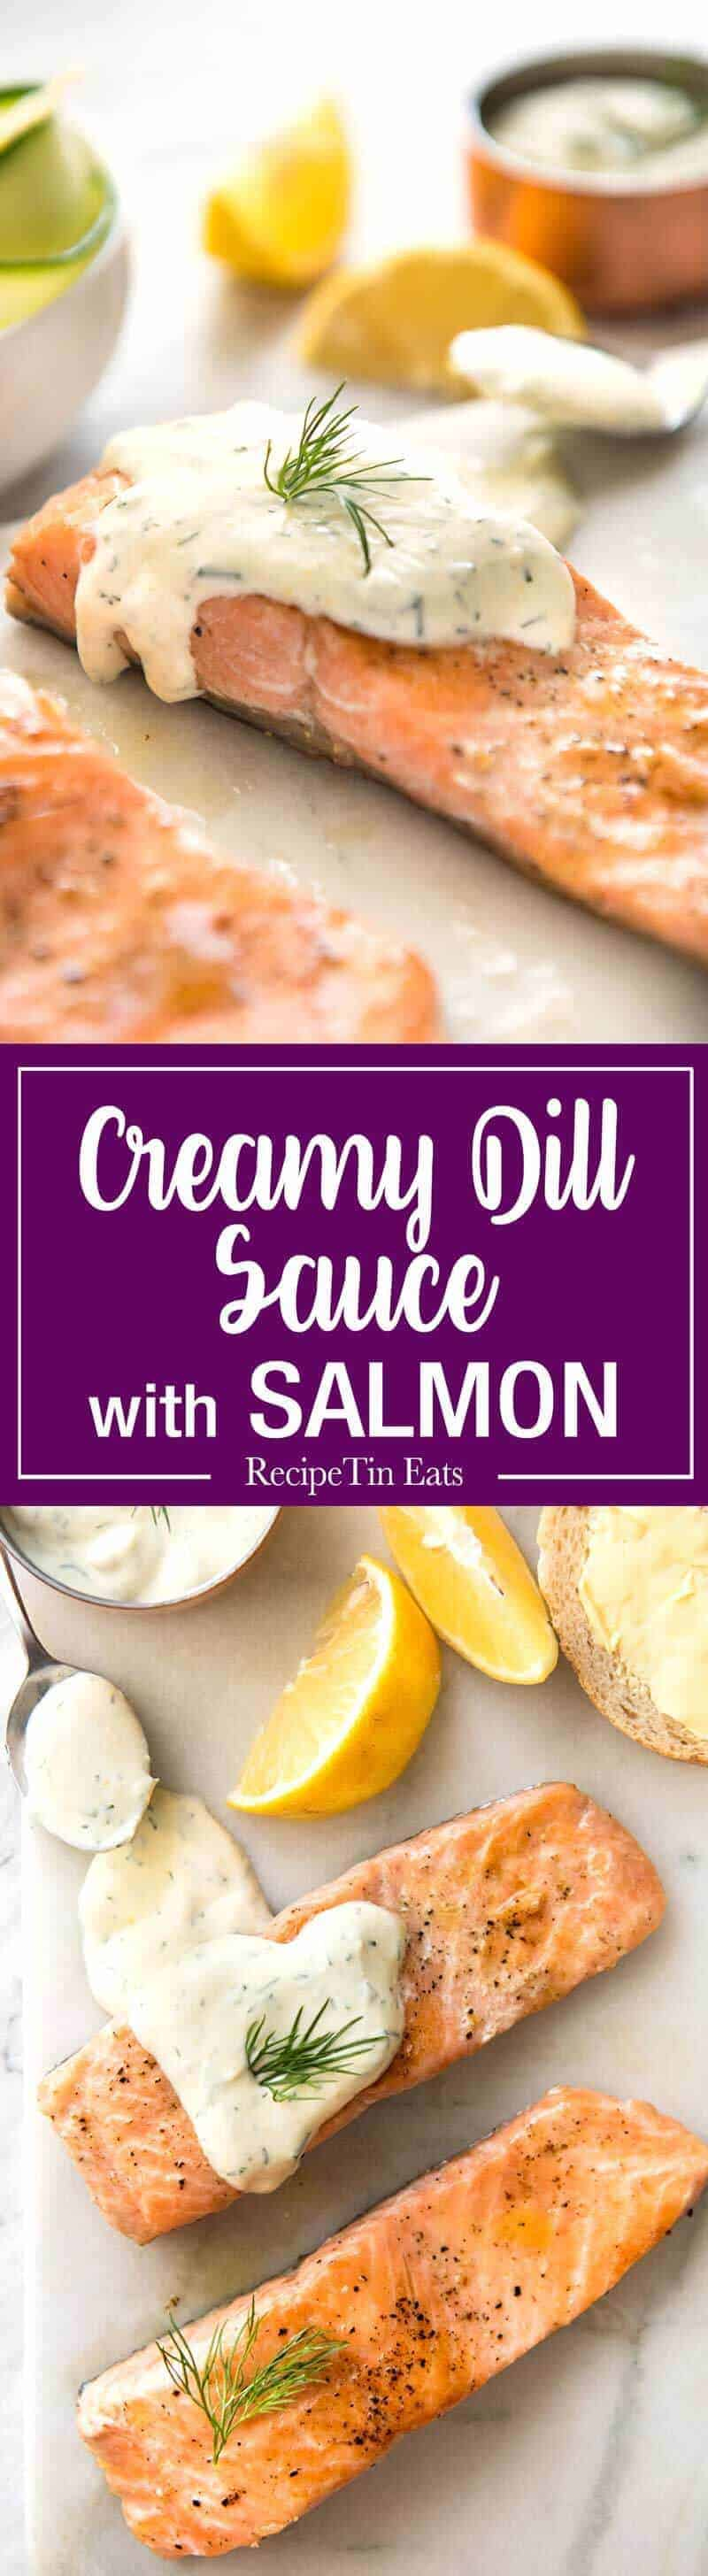 Creamy Dill Sauce for Salmon or Trout - A simple, refreshing sauce that pairs beautifully with rich salmon. Dinner on the table in 15 minutes! www.recipeteineats.com